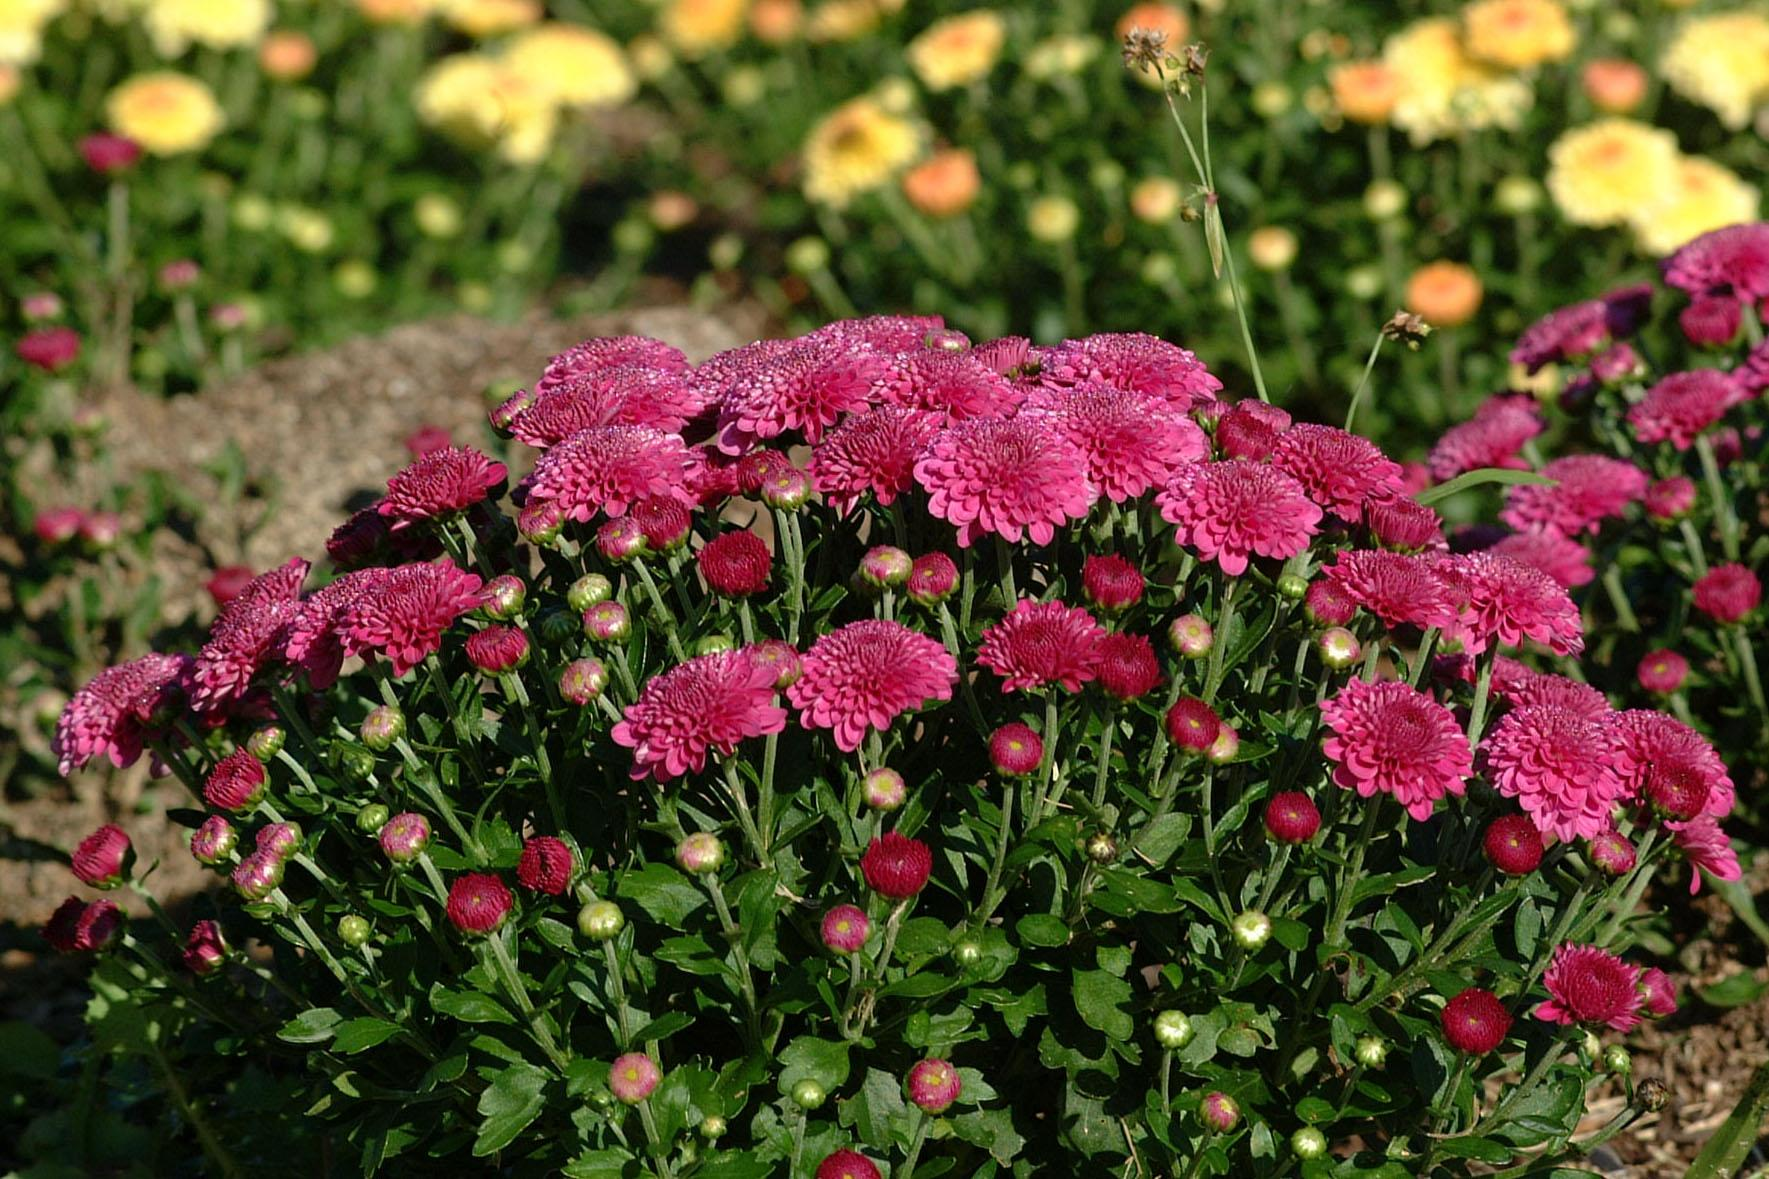 chrysanthemums bring brilliant color to fall gardens